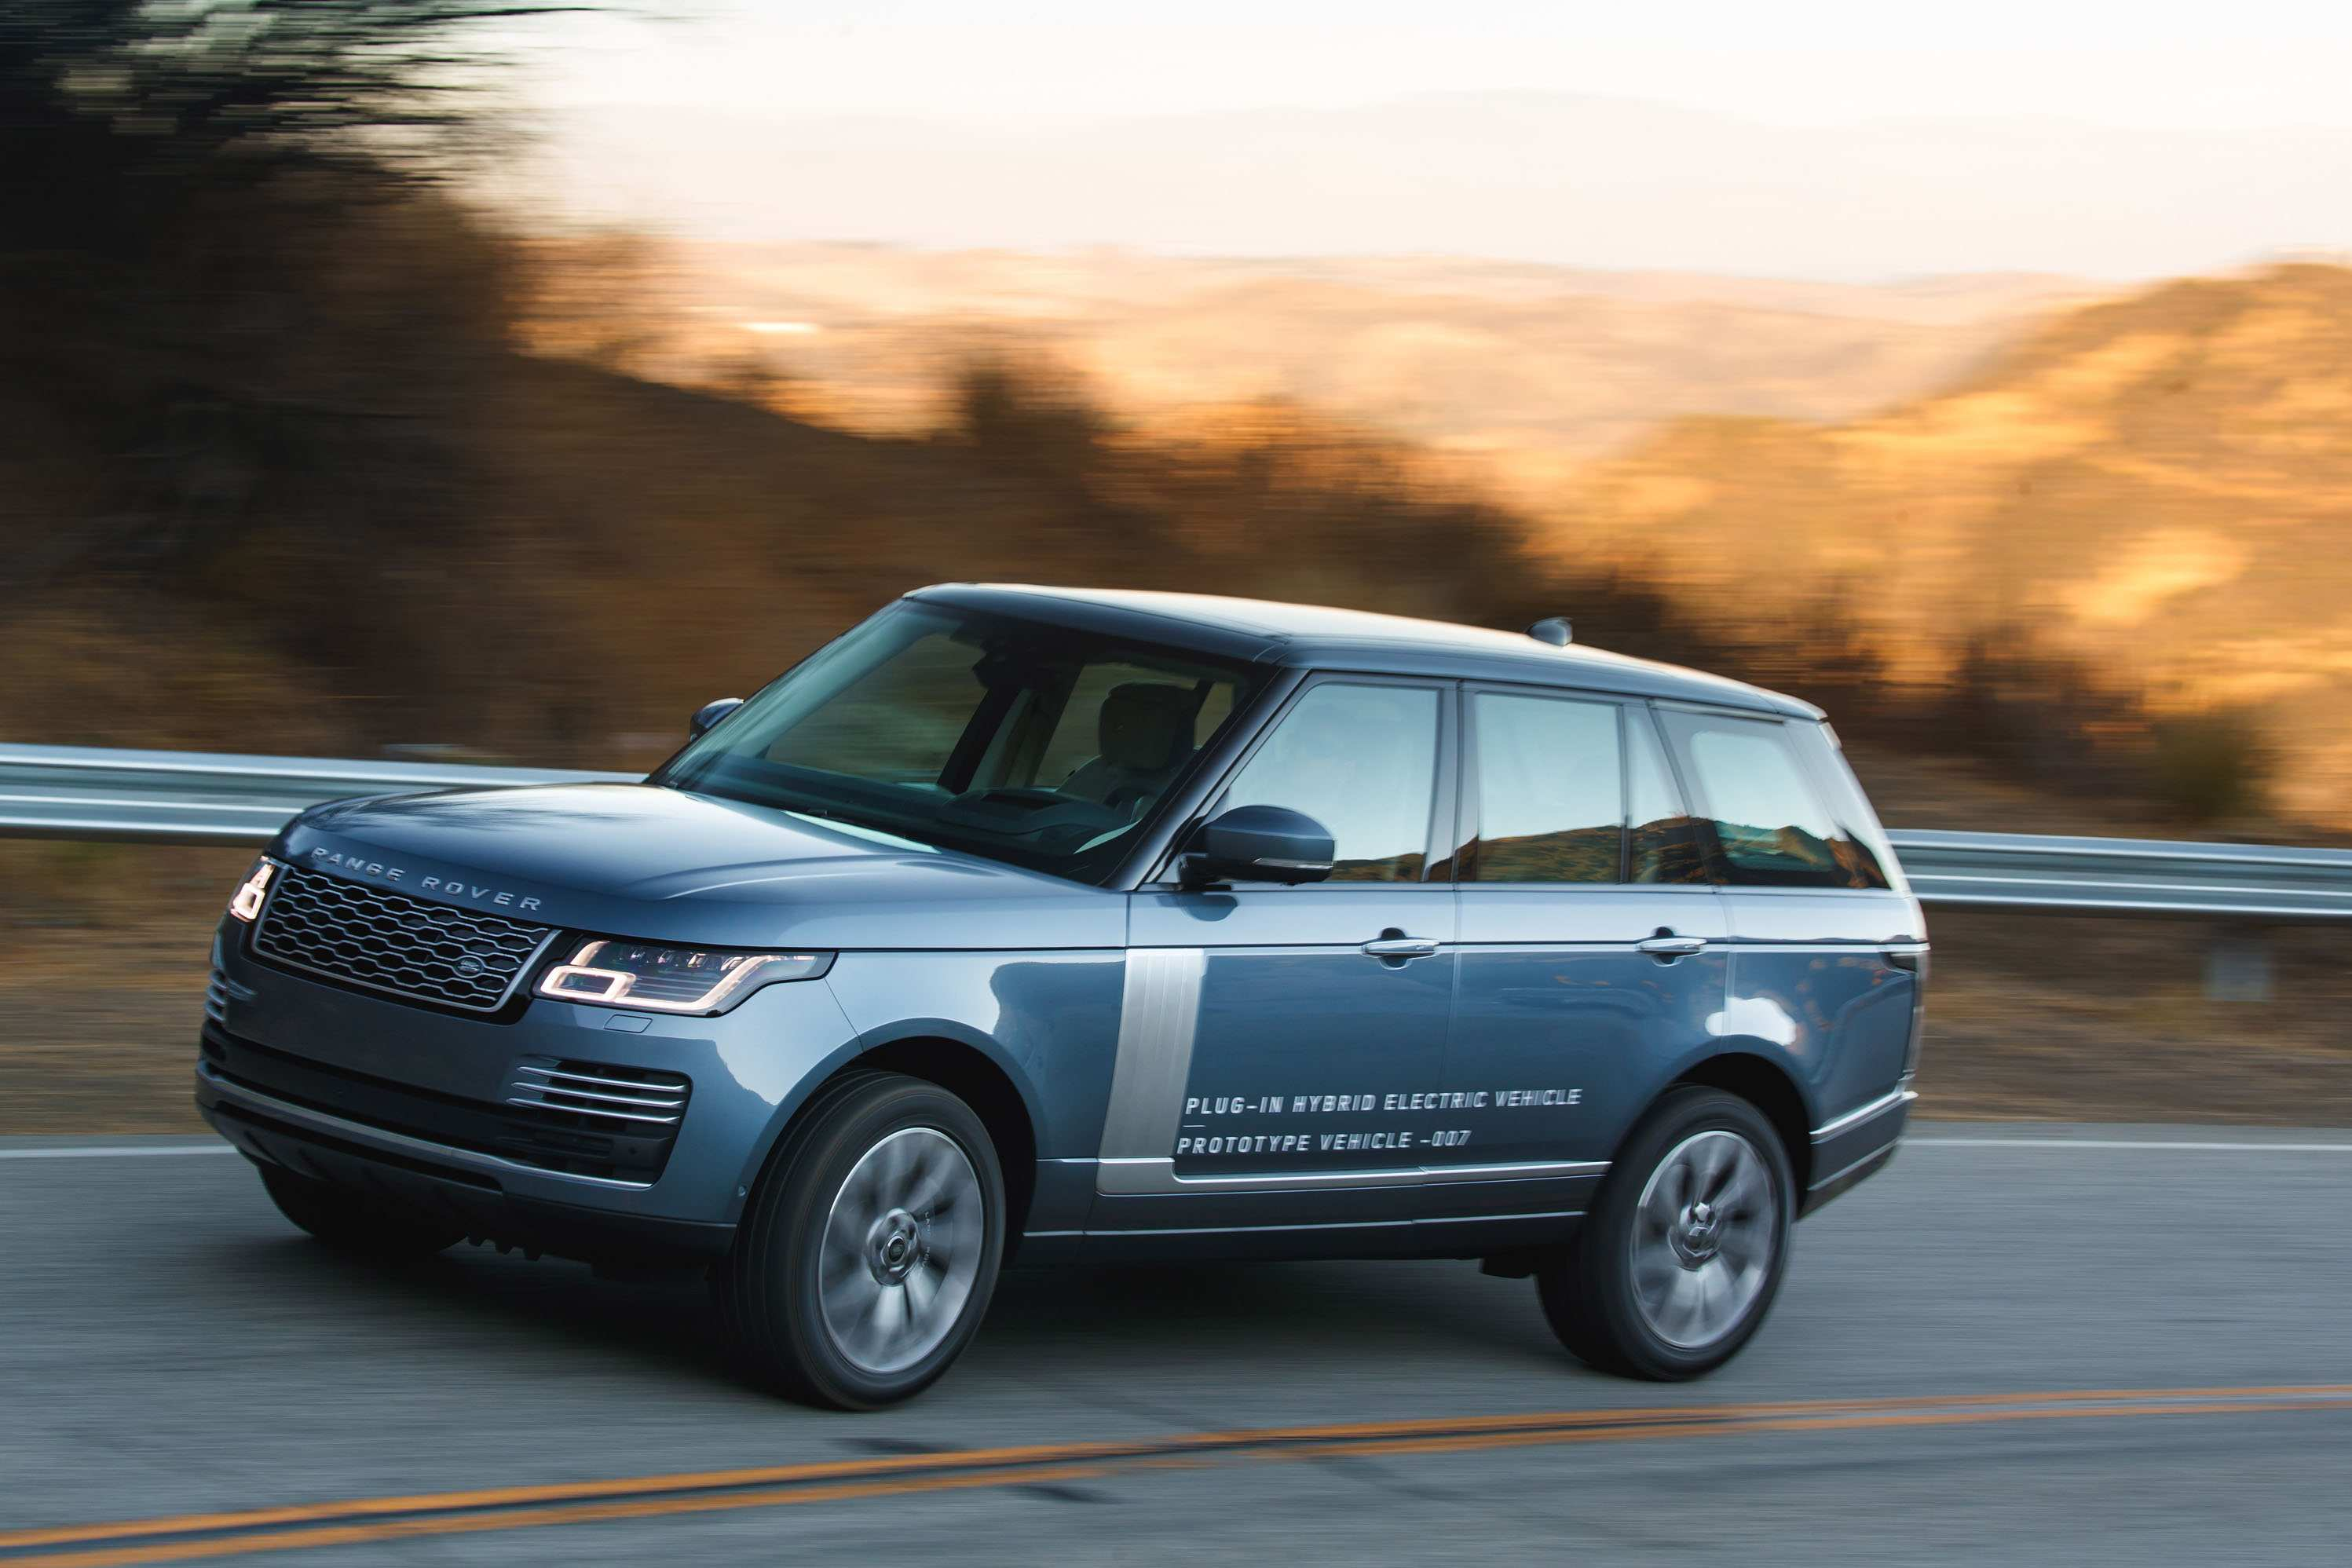 79 Gallery of New Land Rover Range Rover 2019 Exterior with New Land Rover Range Rover 2019